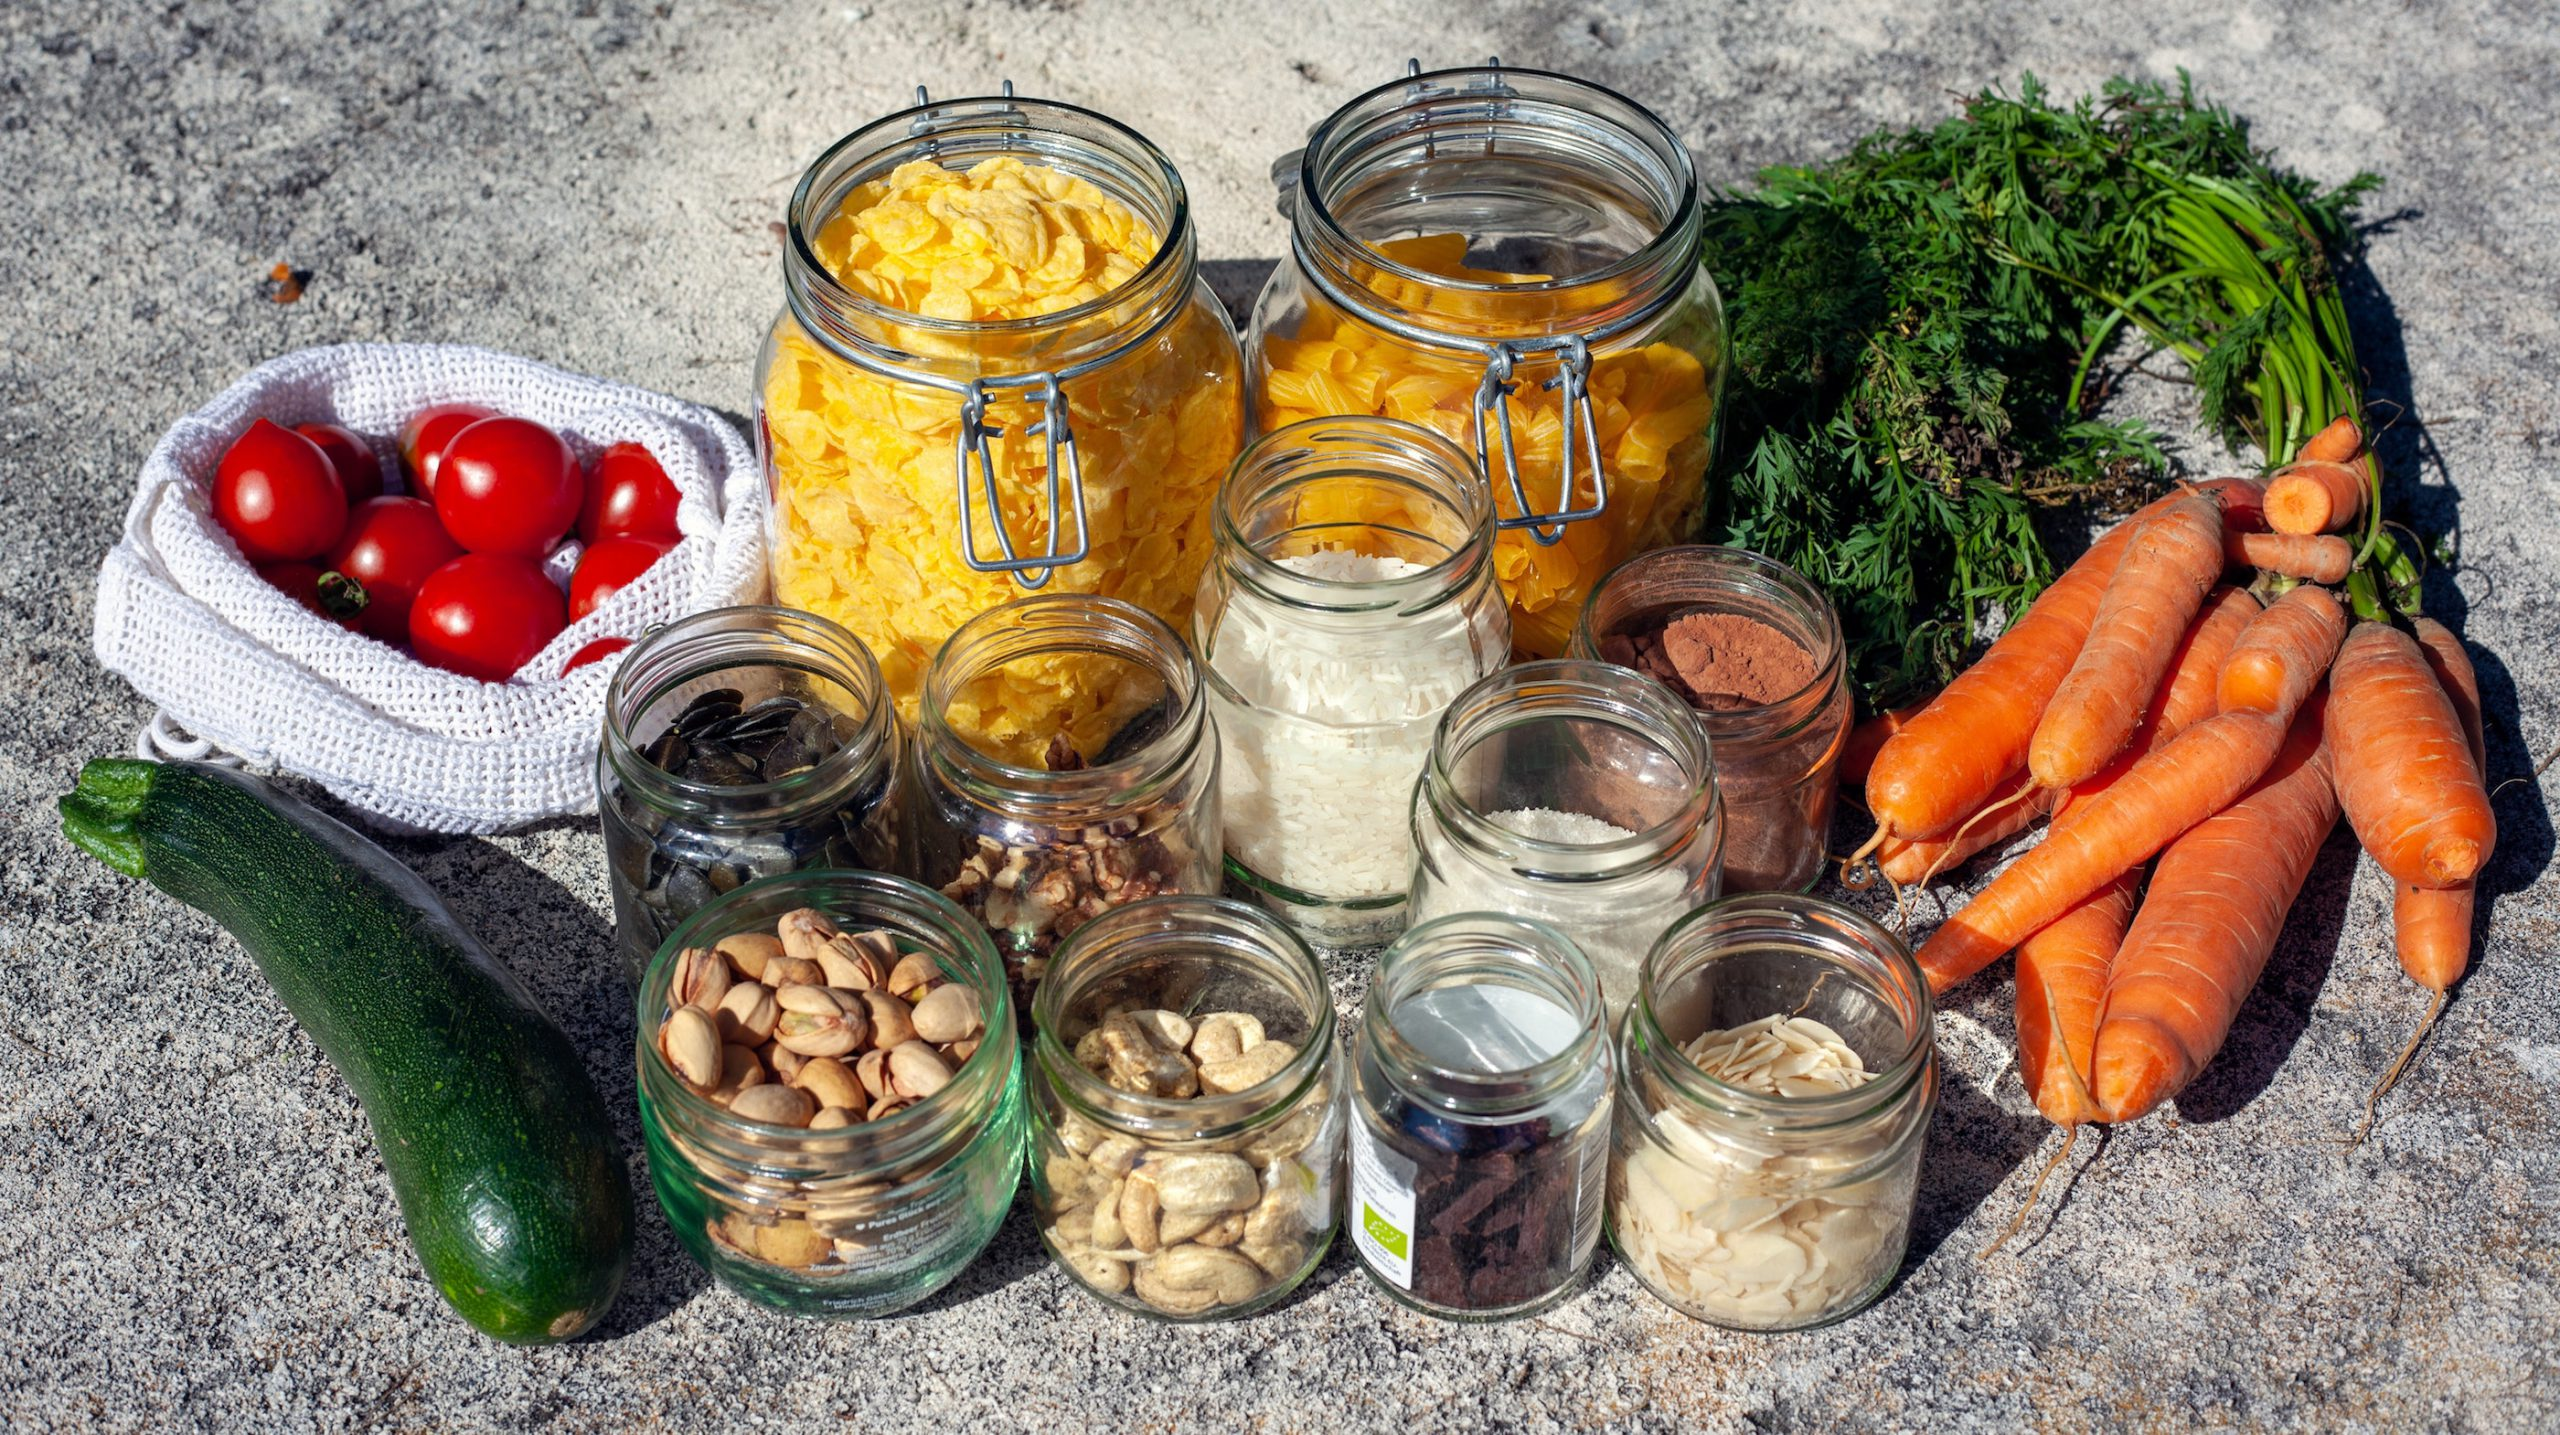 Food storage tips to avoid waste